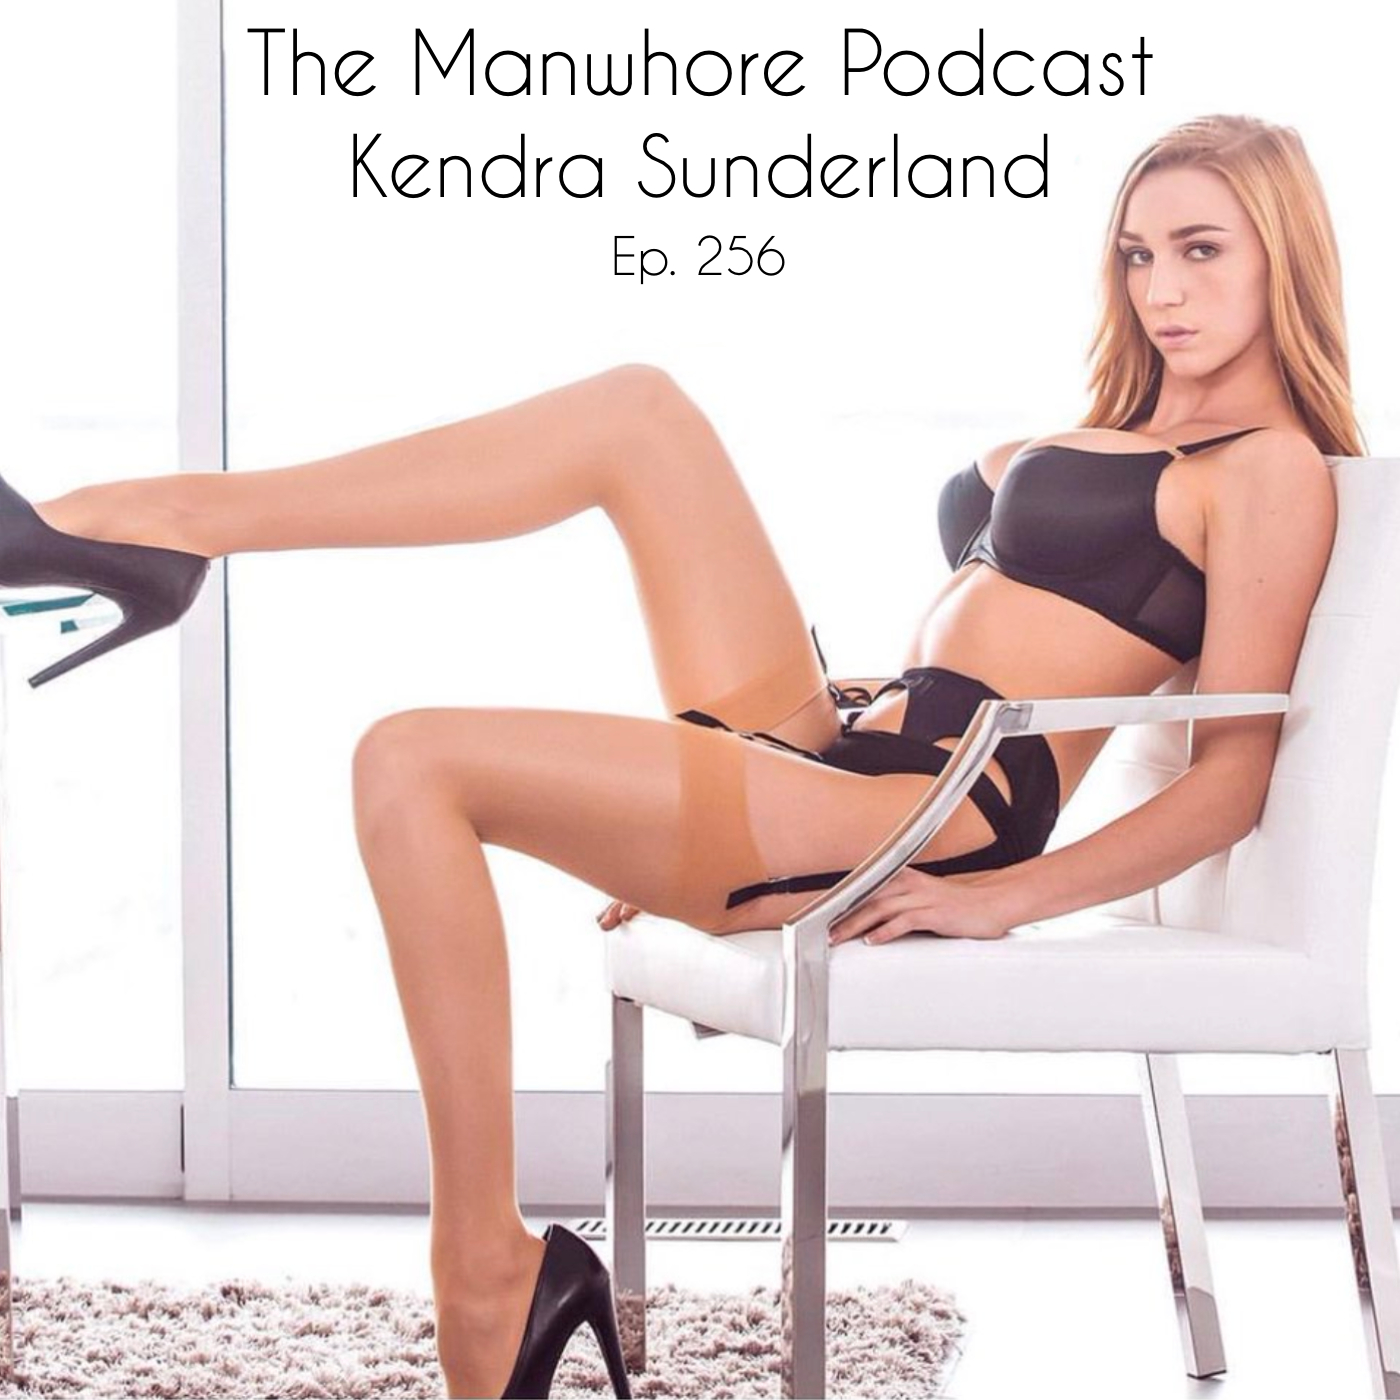 The Manwhore Podcast: A Sex-Positive Quest - Ep. 256: Ditching the Porn Drama with Kendra Sunderland